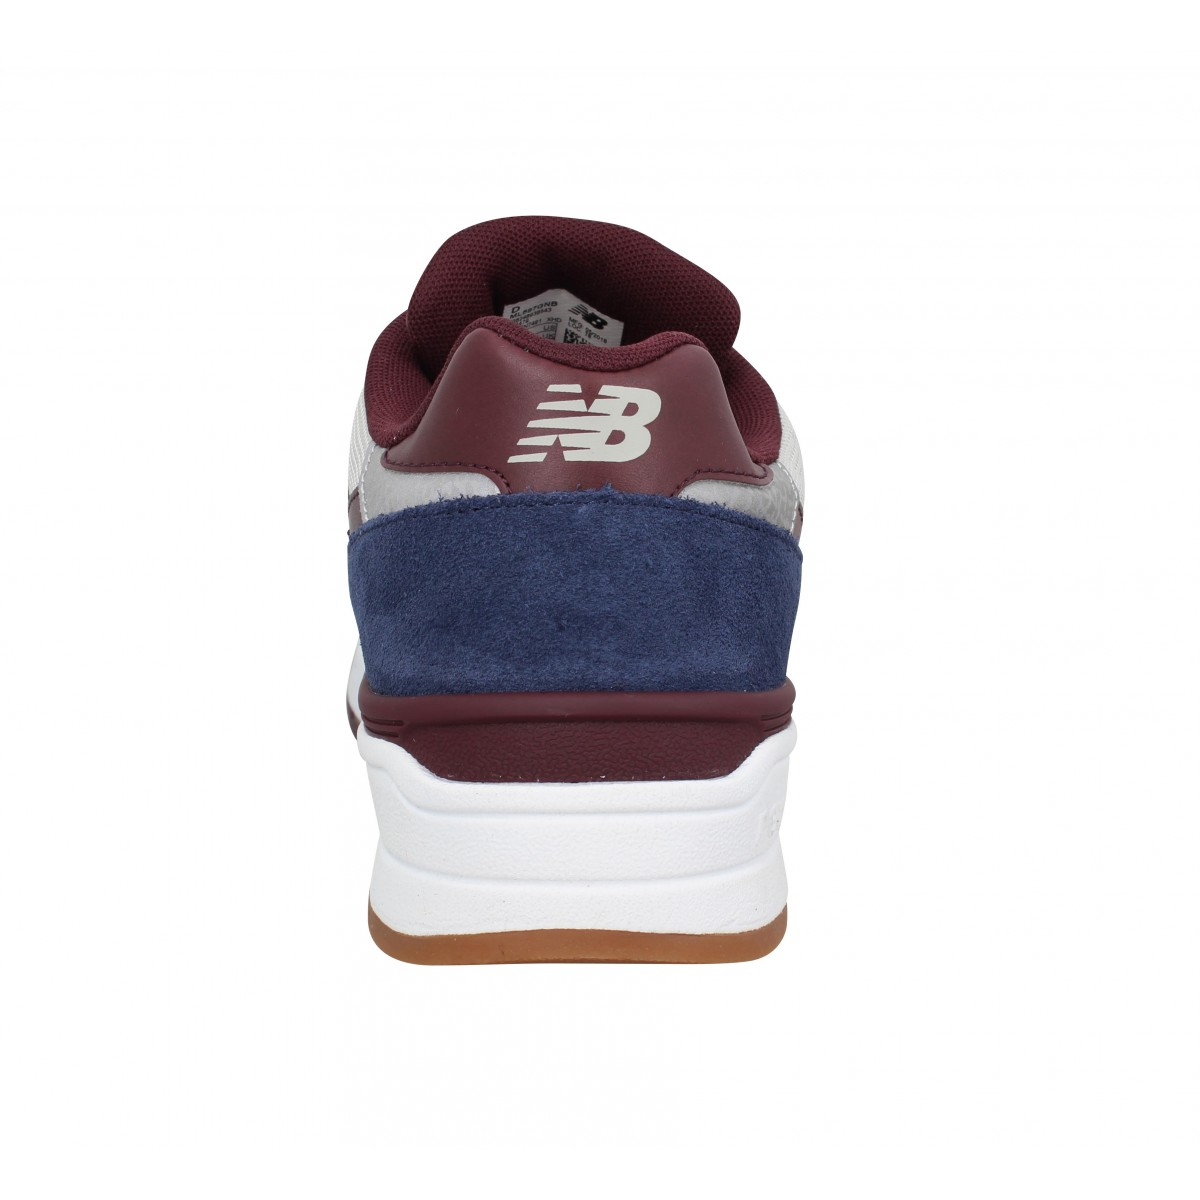 Chaussures New balance 597 velours homme marine homme | Fanny ...